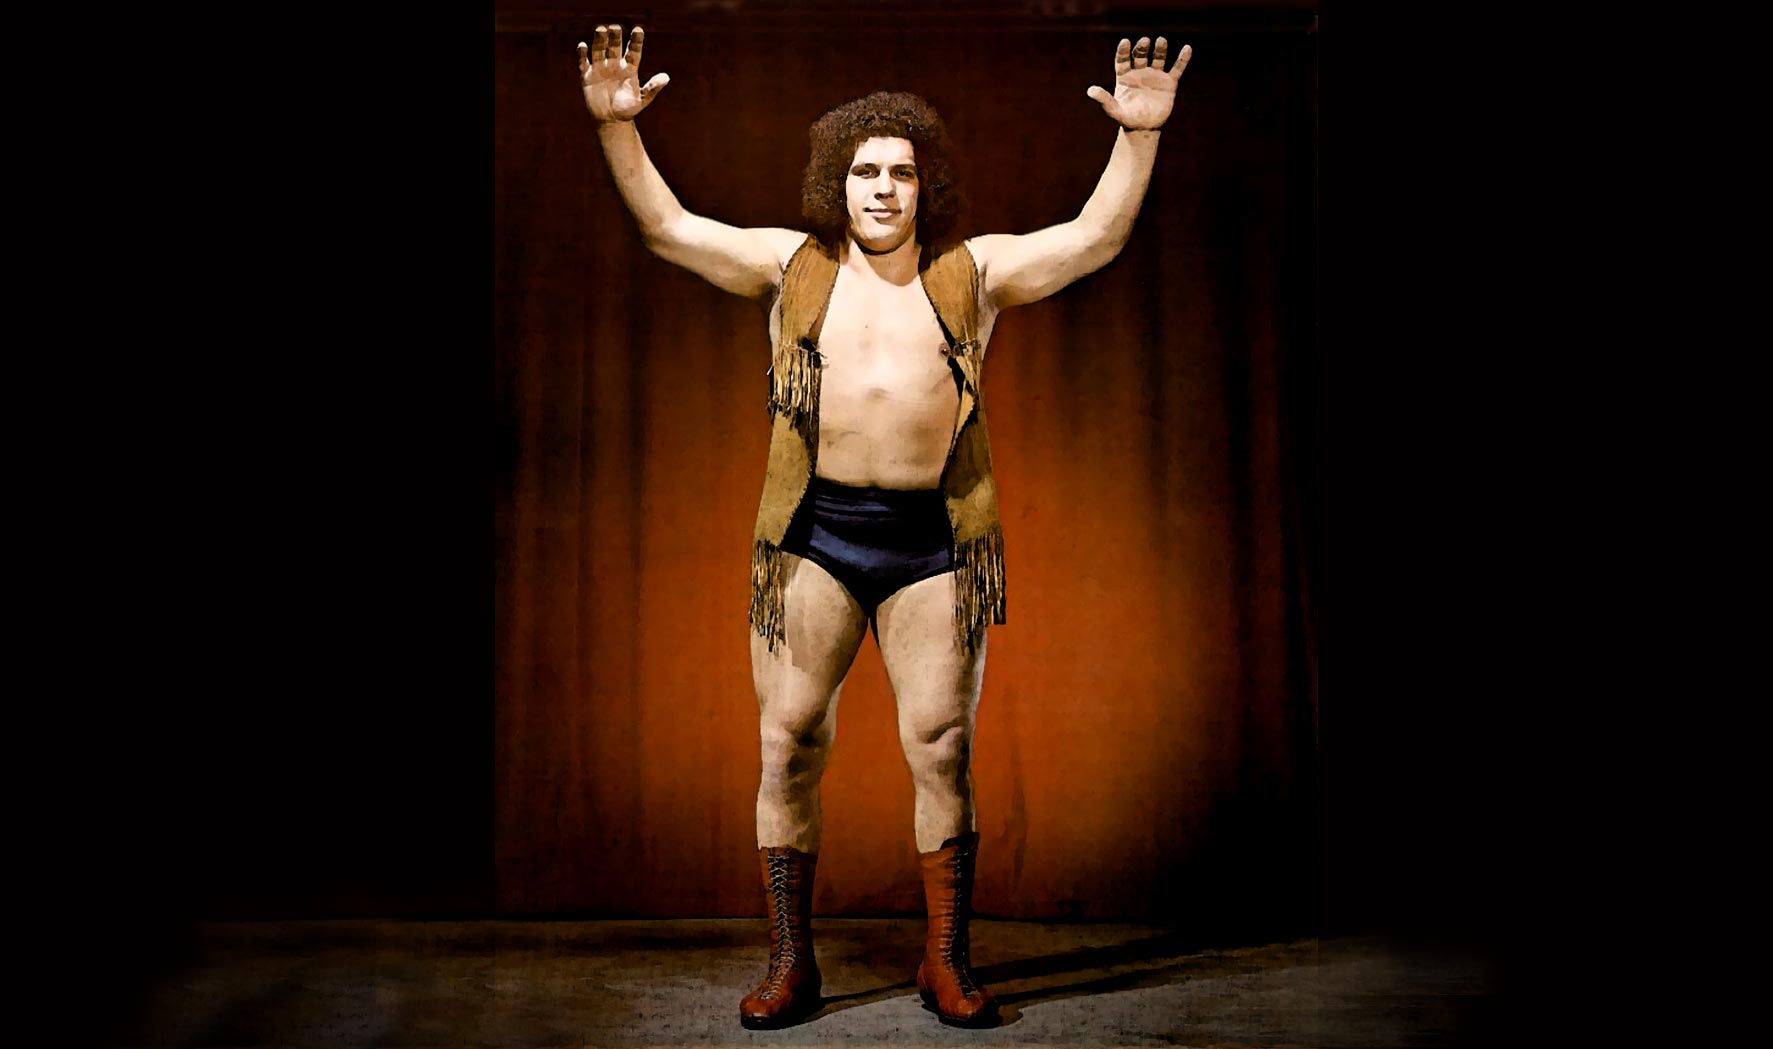 The Greatest Drunk on Earth: Andre the Giant